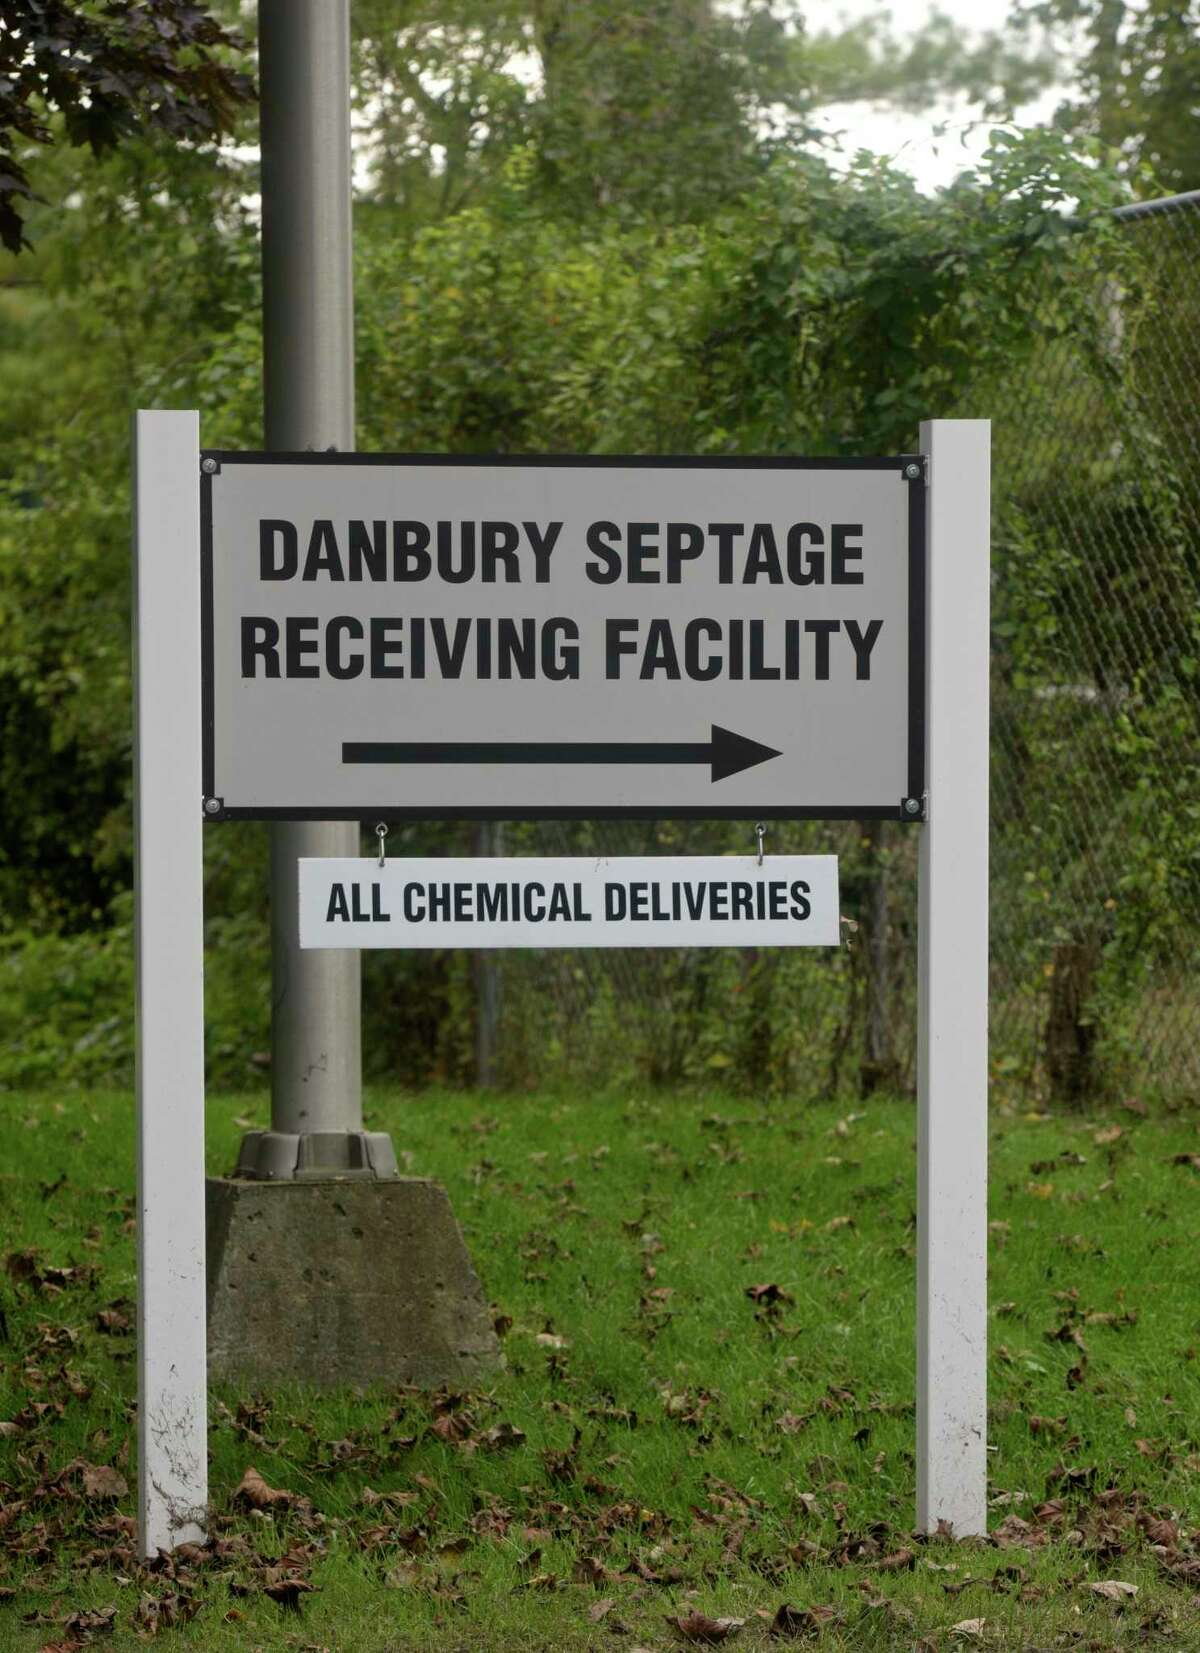 Danbury sewer plant which is being updated to meet state standards and is likely to be renamed after comedian John Oliver. Wednesday, October 7, 2020, in Danbury, Conn. The City Council authorized the renaming in a vote last week. The mayor also spoke about the effort to raise at least $100,000 for local food banks, and how he's planning to lead tours of the sewer plant to people who donate $500 to feedingourneighborschallenge.org.